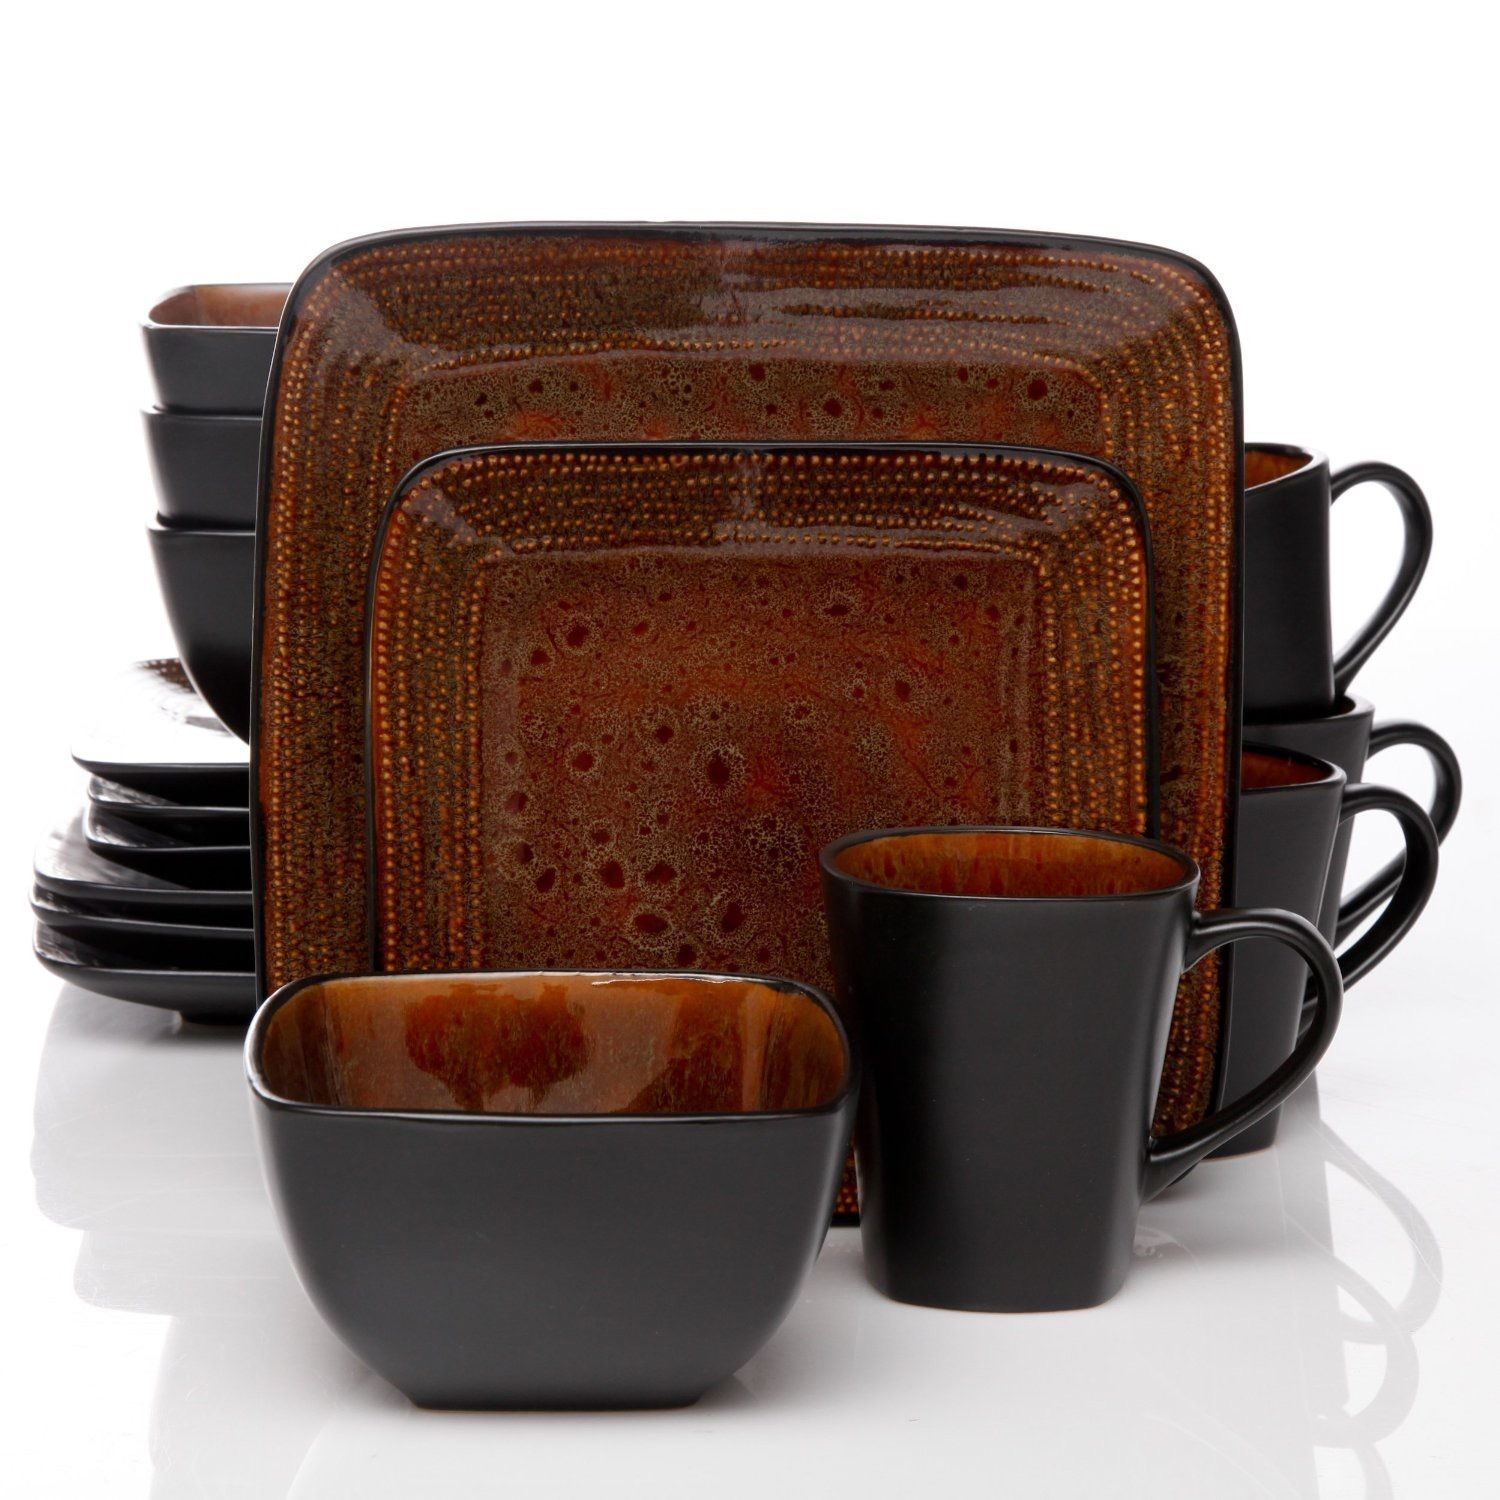 Autumn Amber 16 Piece Dinnerware Set | Dinnerware, Amber and Products